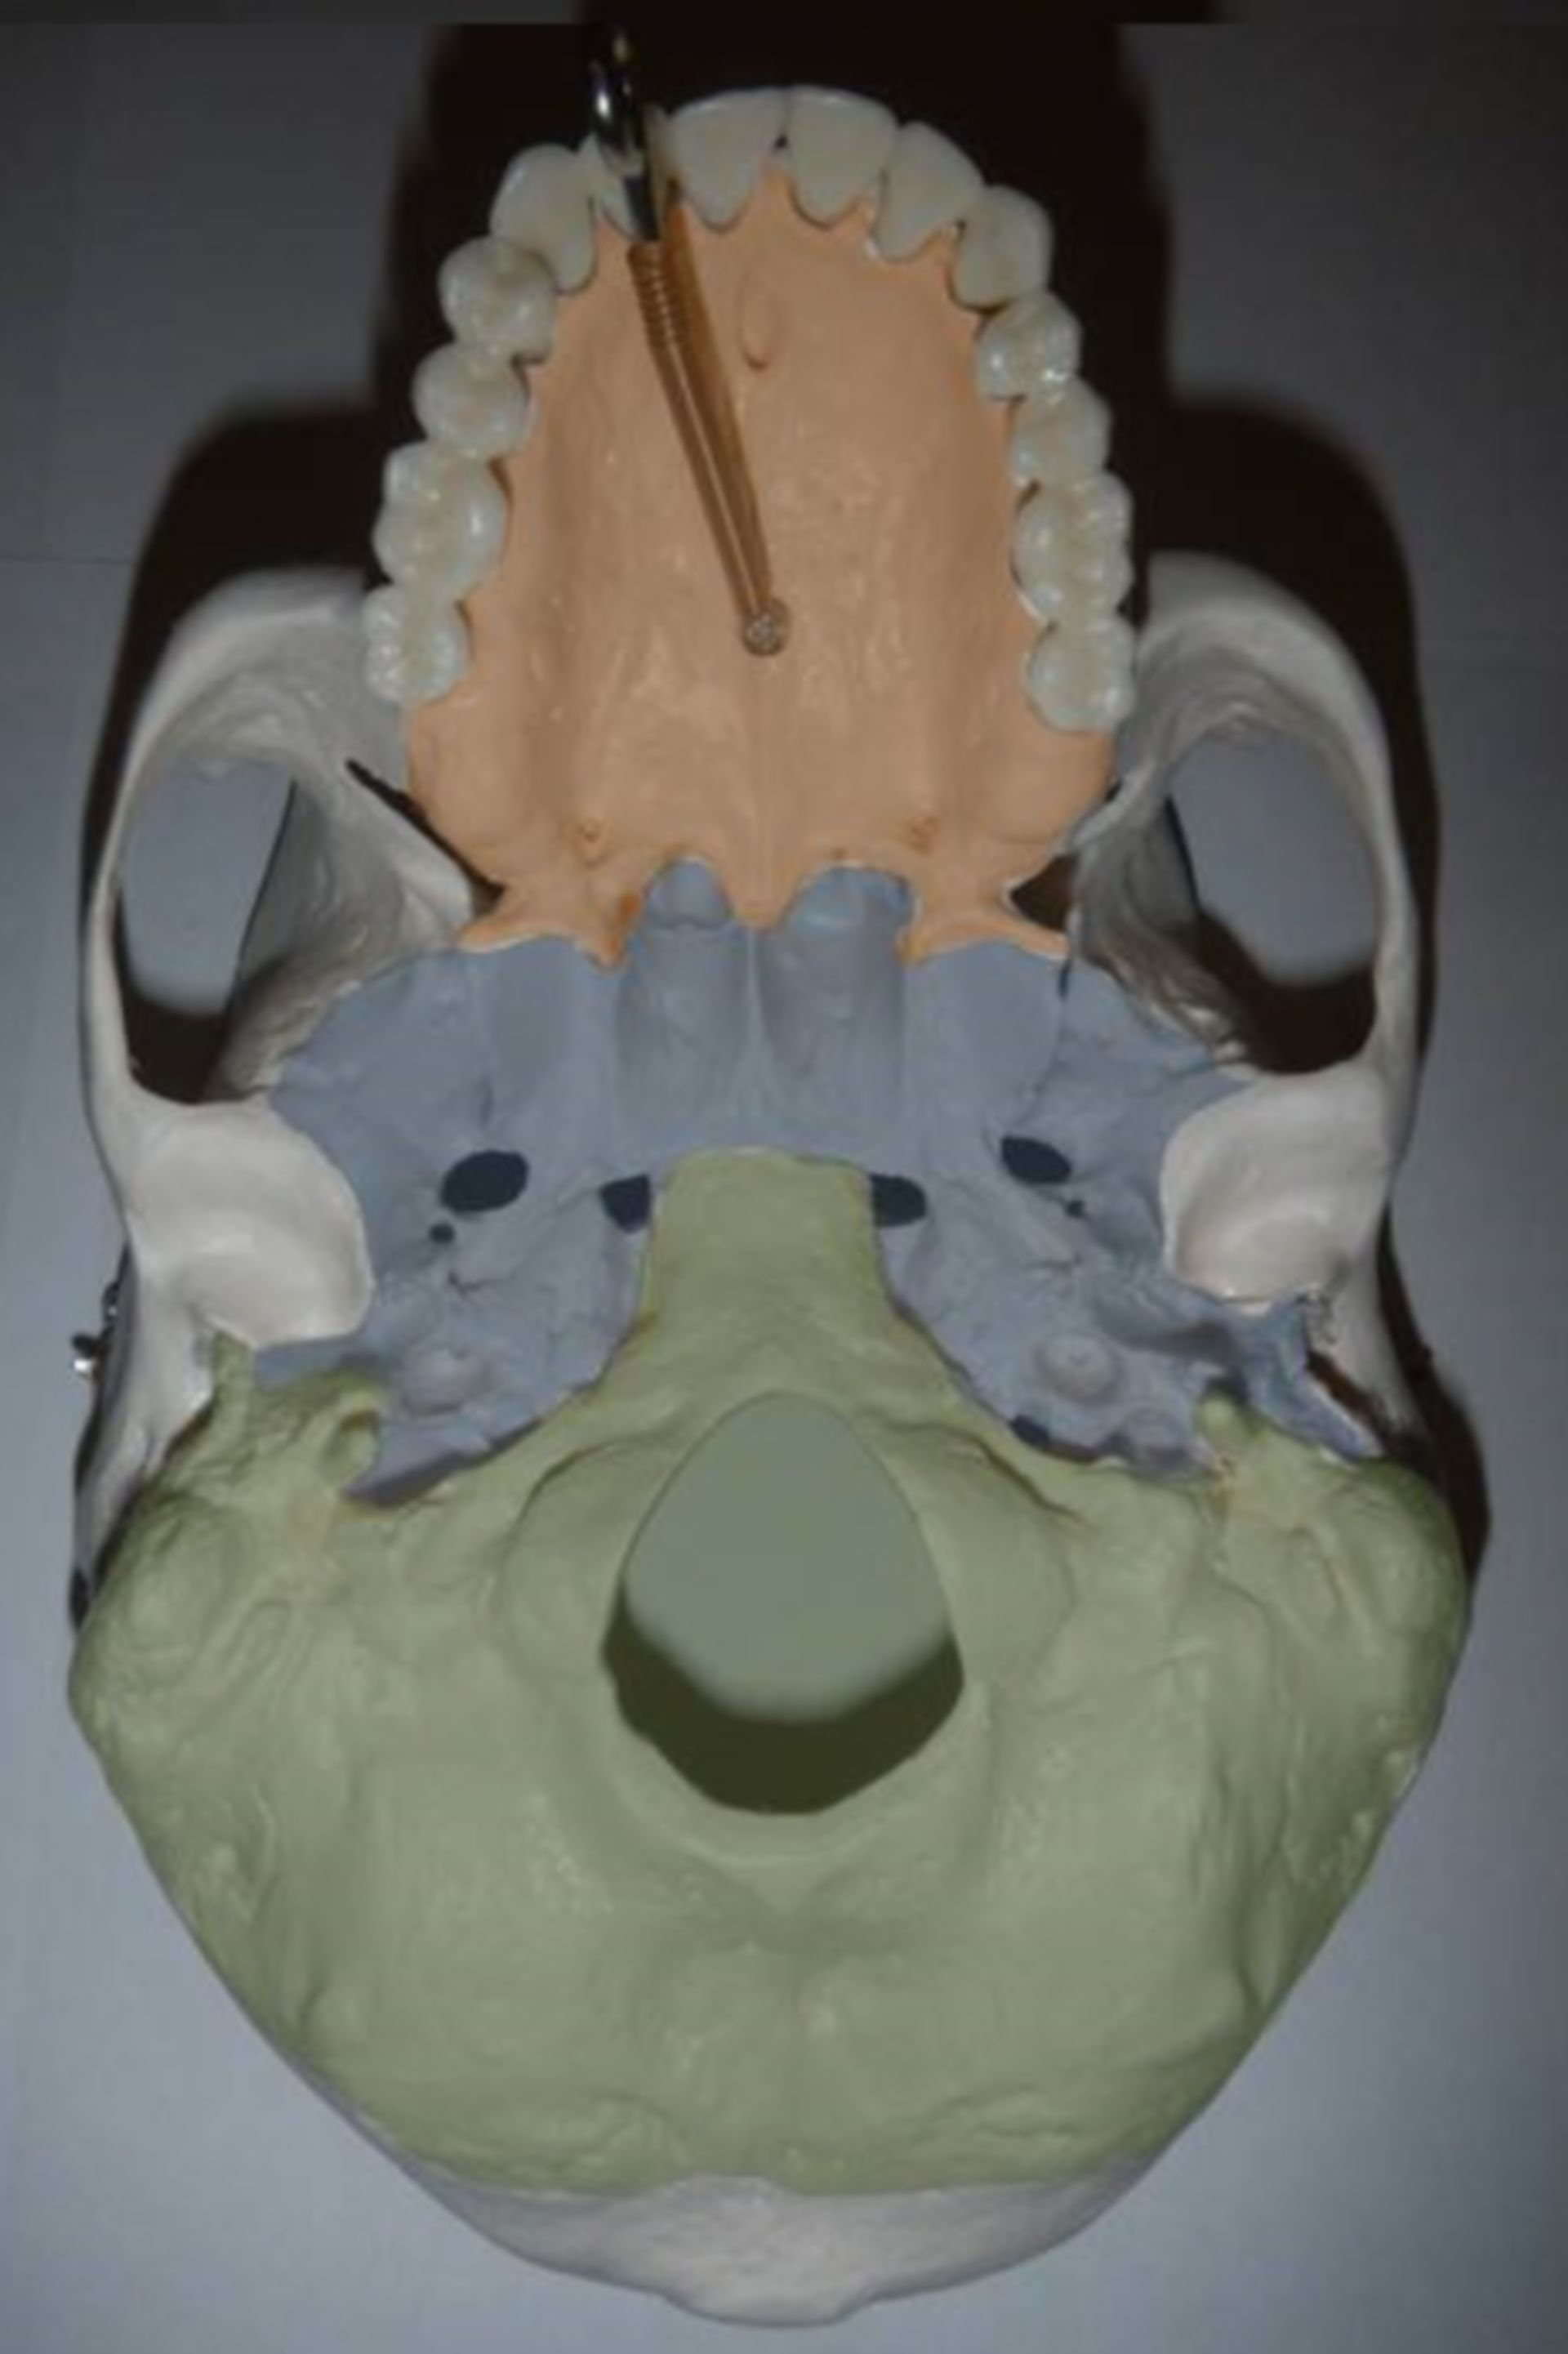 Basis cranii externa - Base of the skull from outside